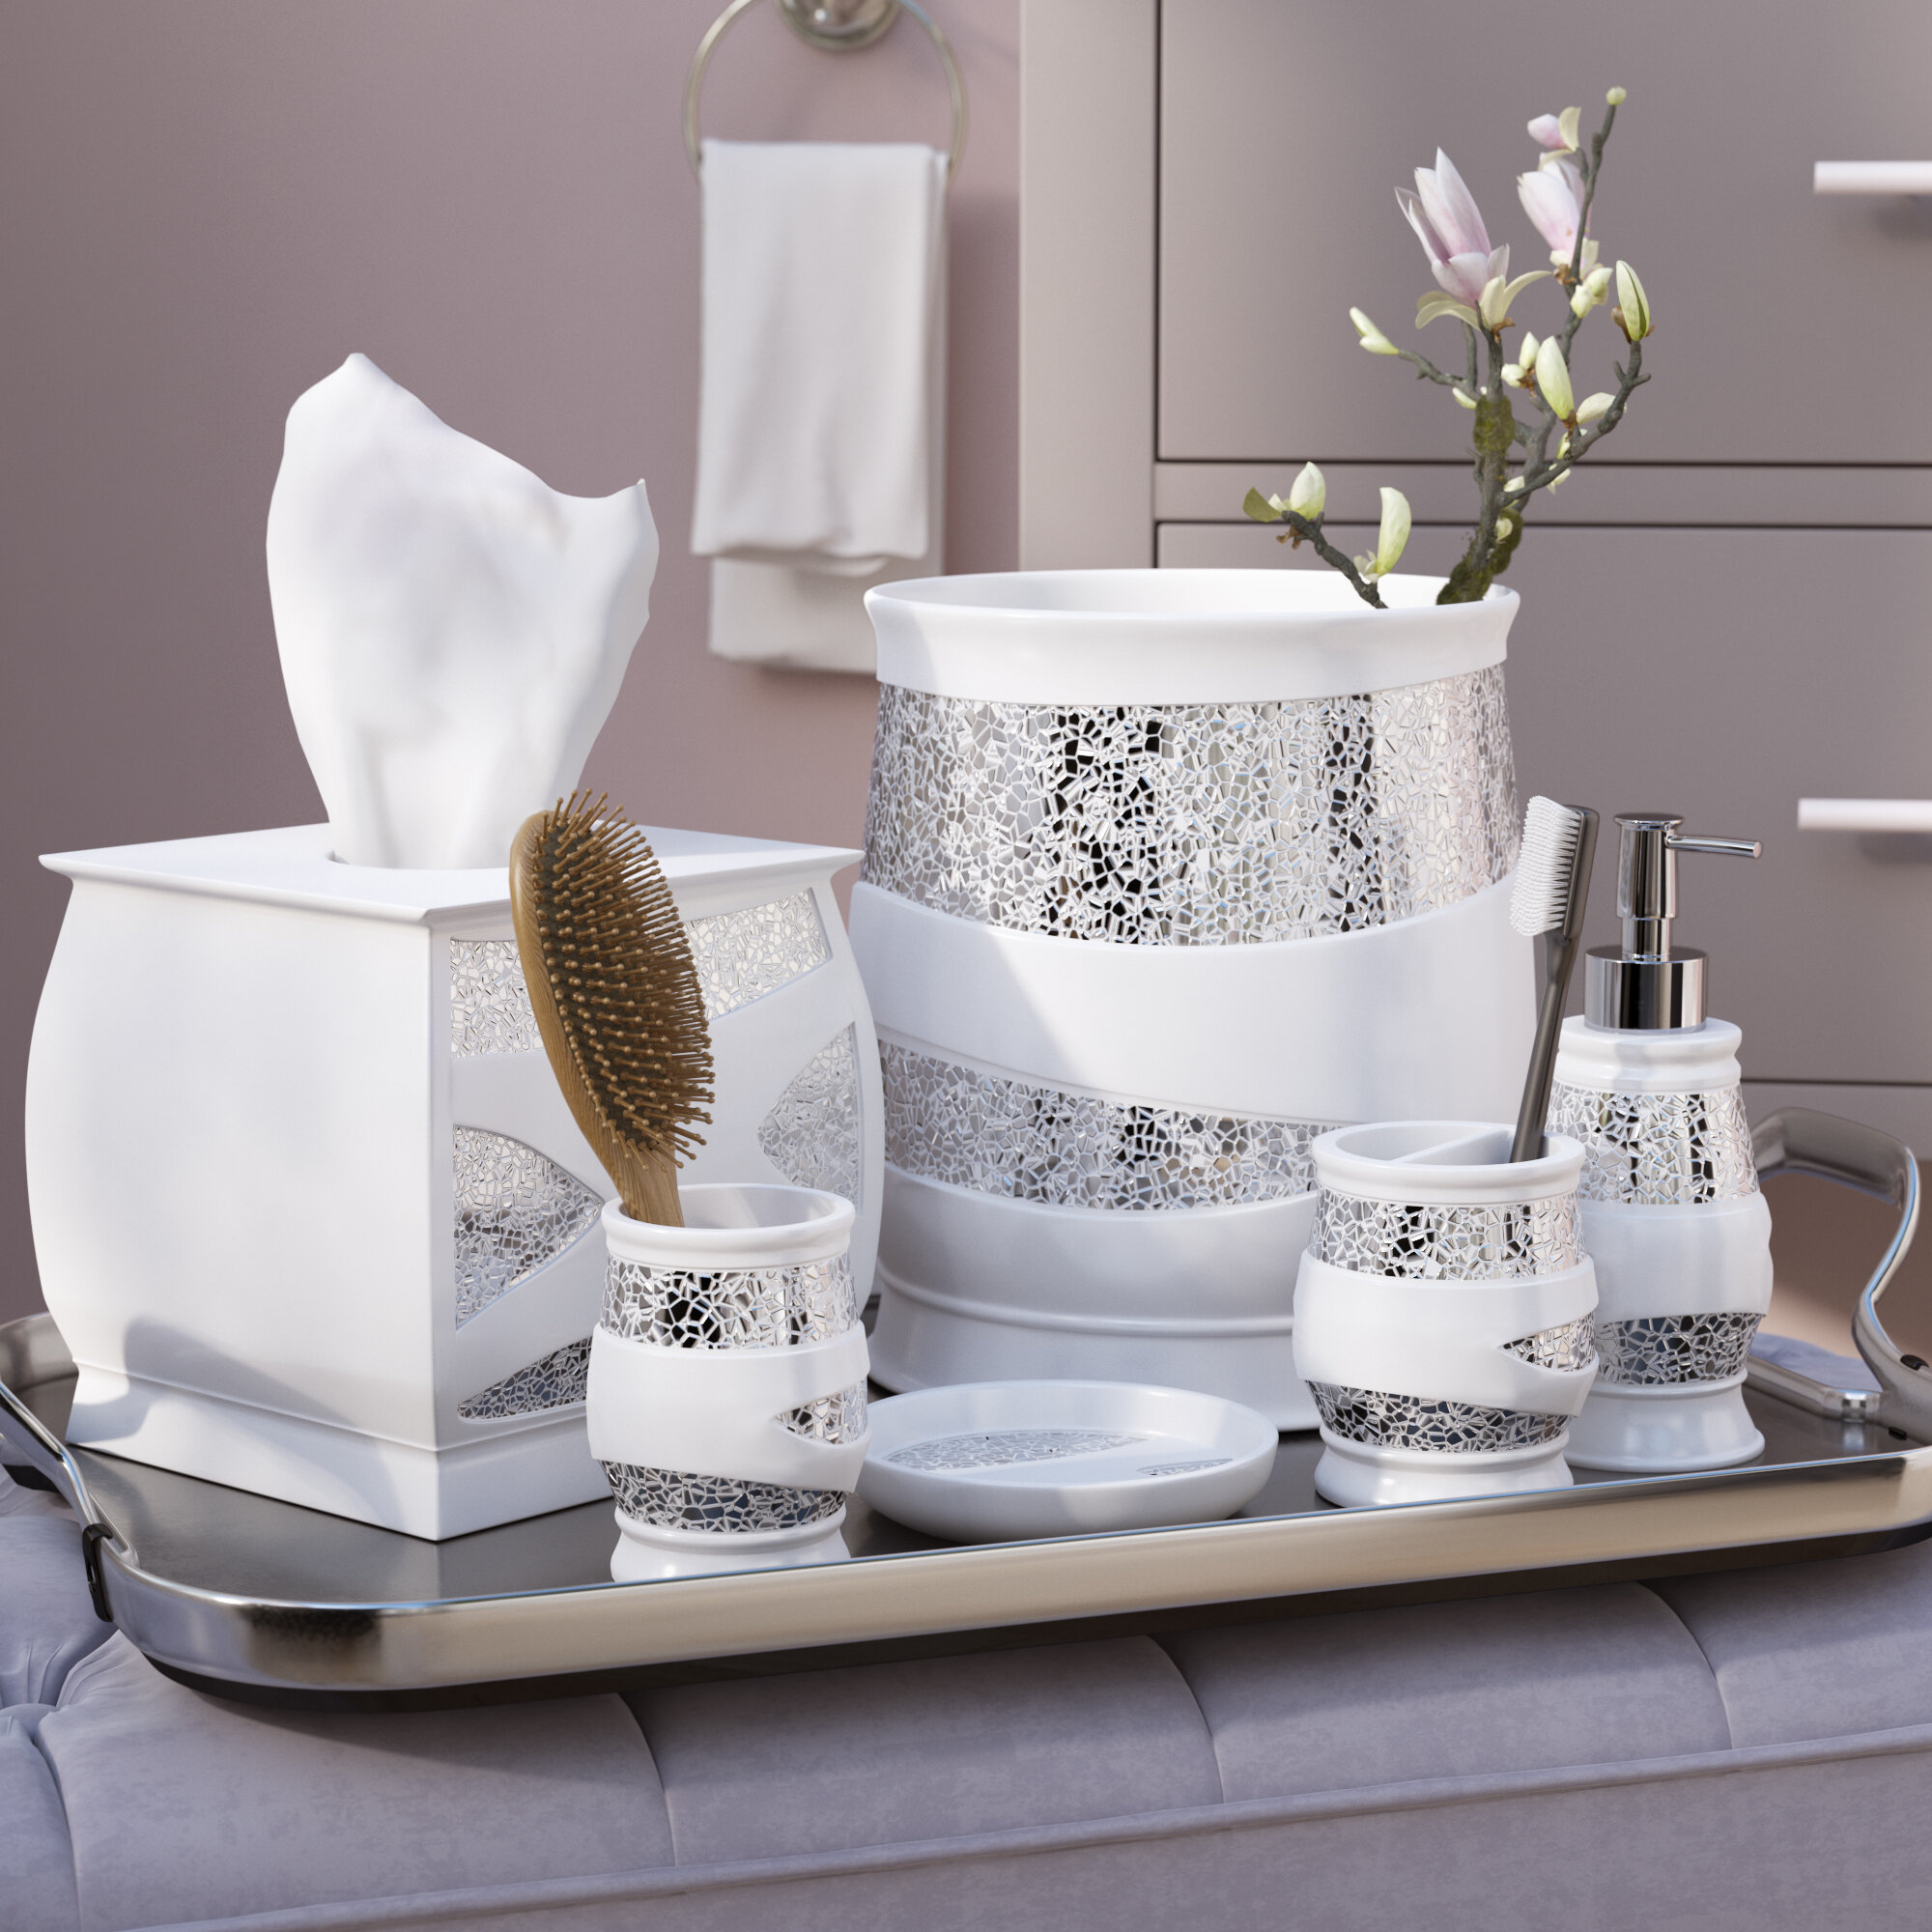 Wonderful Willa Arlo Interiors Rivet 6 Piece White/Silver Bathroom Accessory Set U0026  Reviews | Wayfair